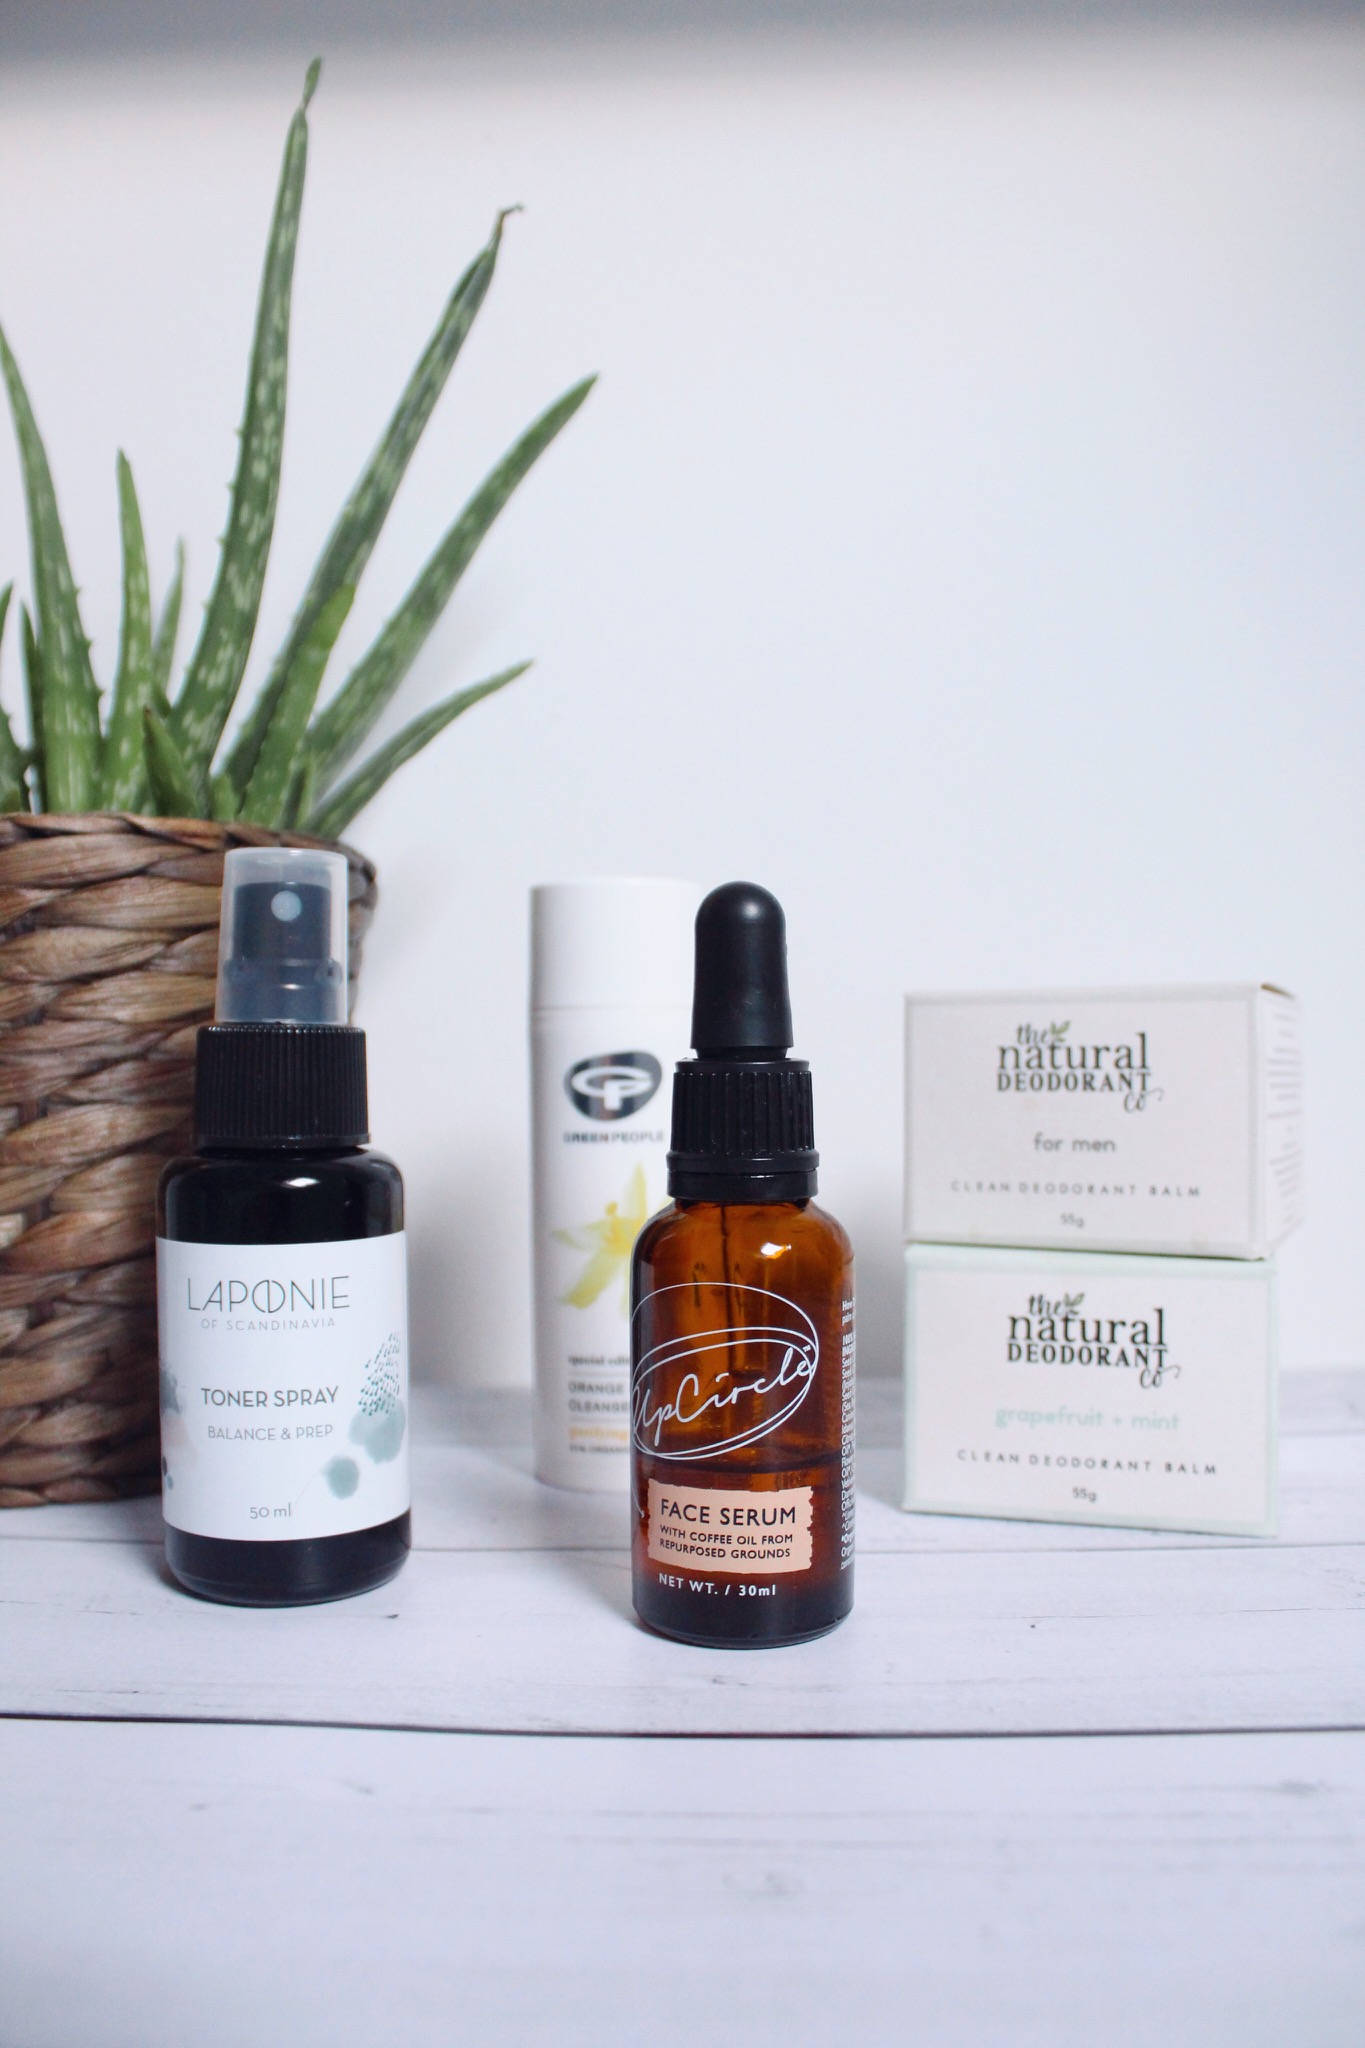 Three things to look out for in sustainable skincare